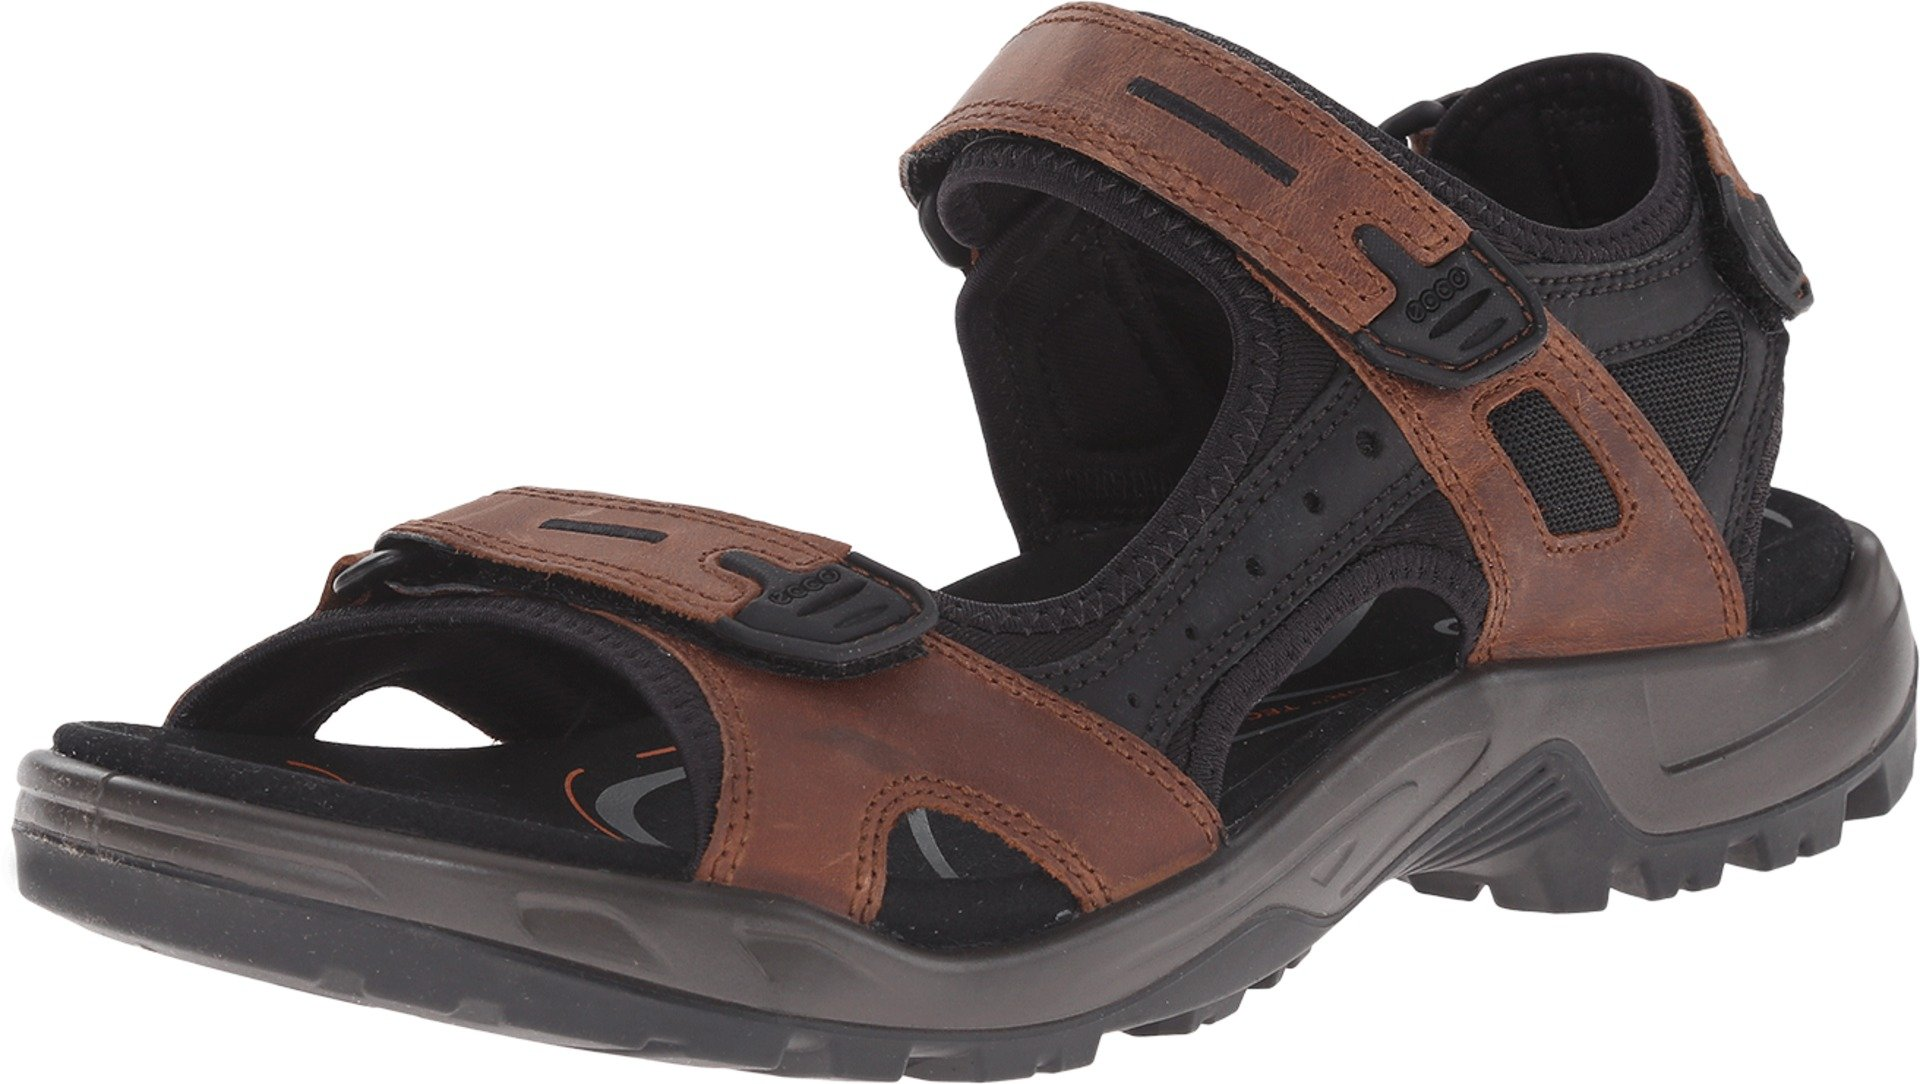 ECCO Men's Yucatan Sandal,Bison/Black/Black,41 EU (US Men's 7-7.5 M)